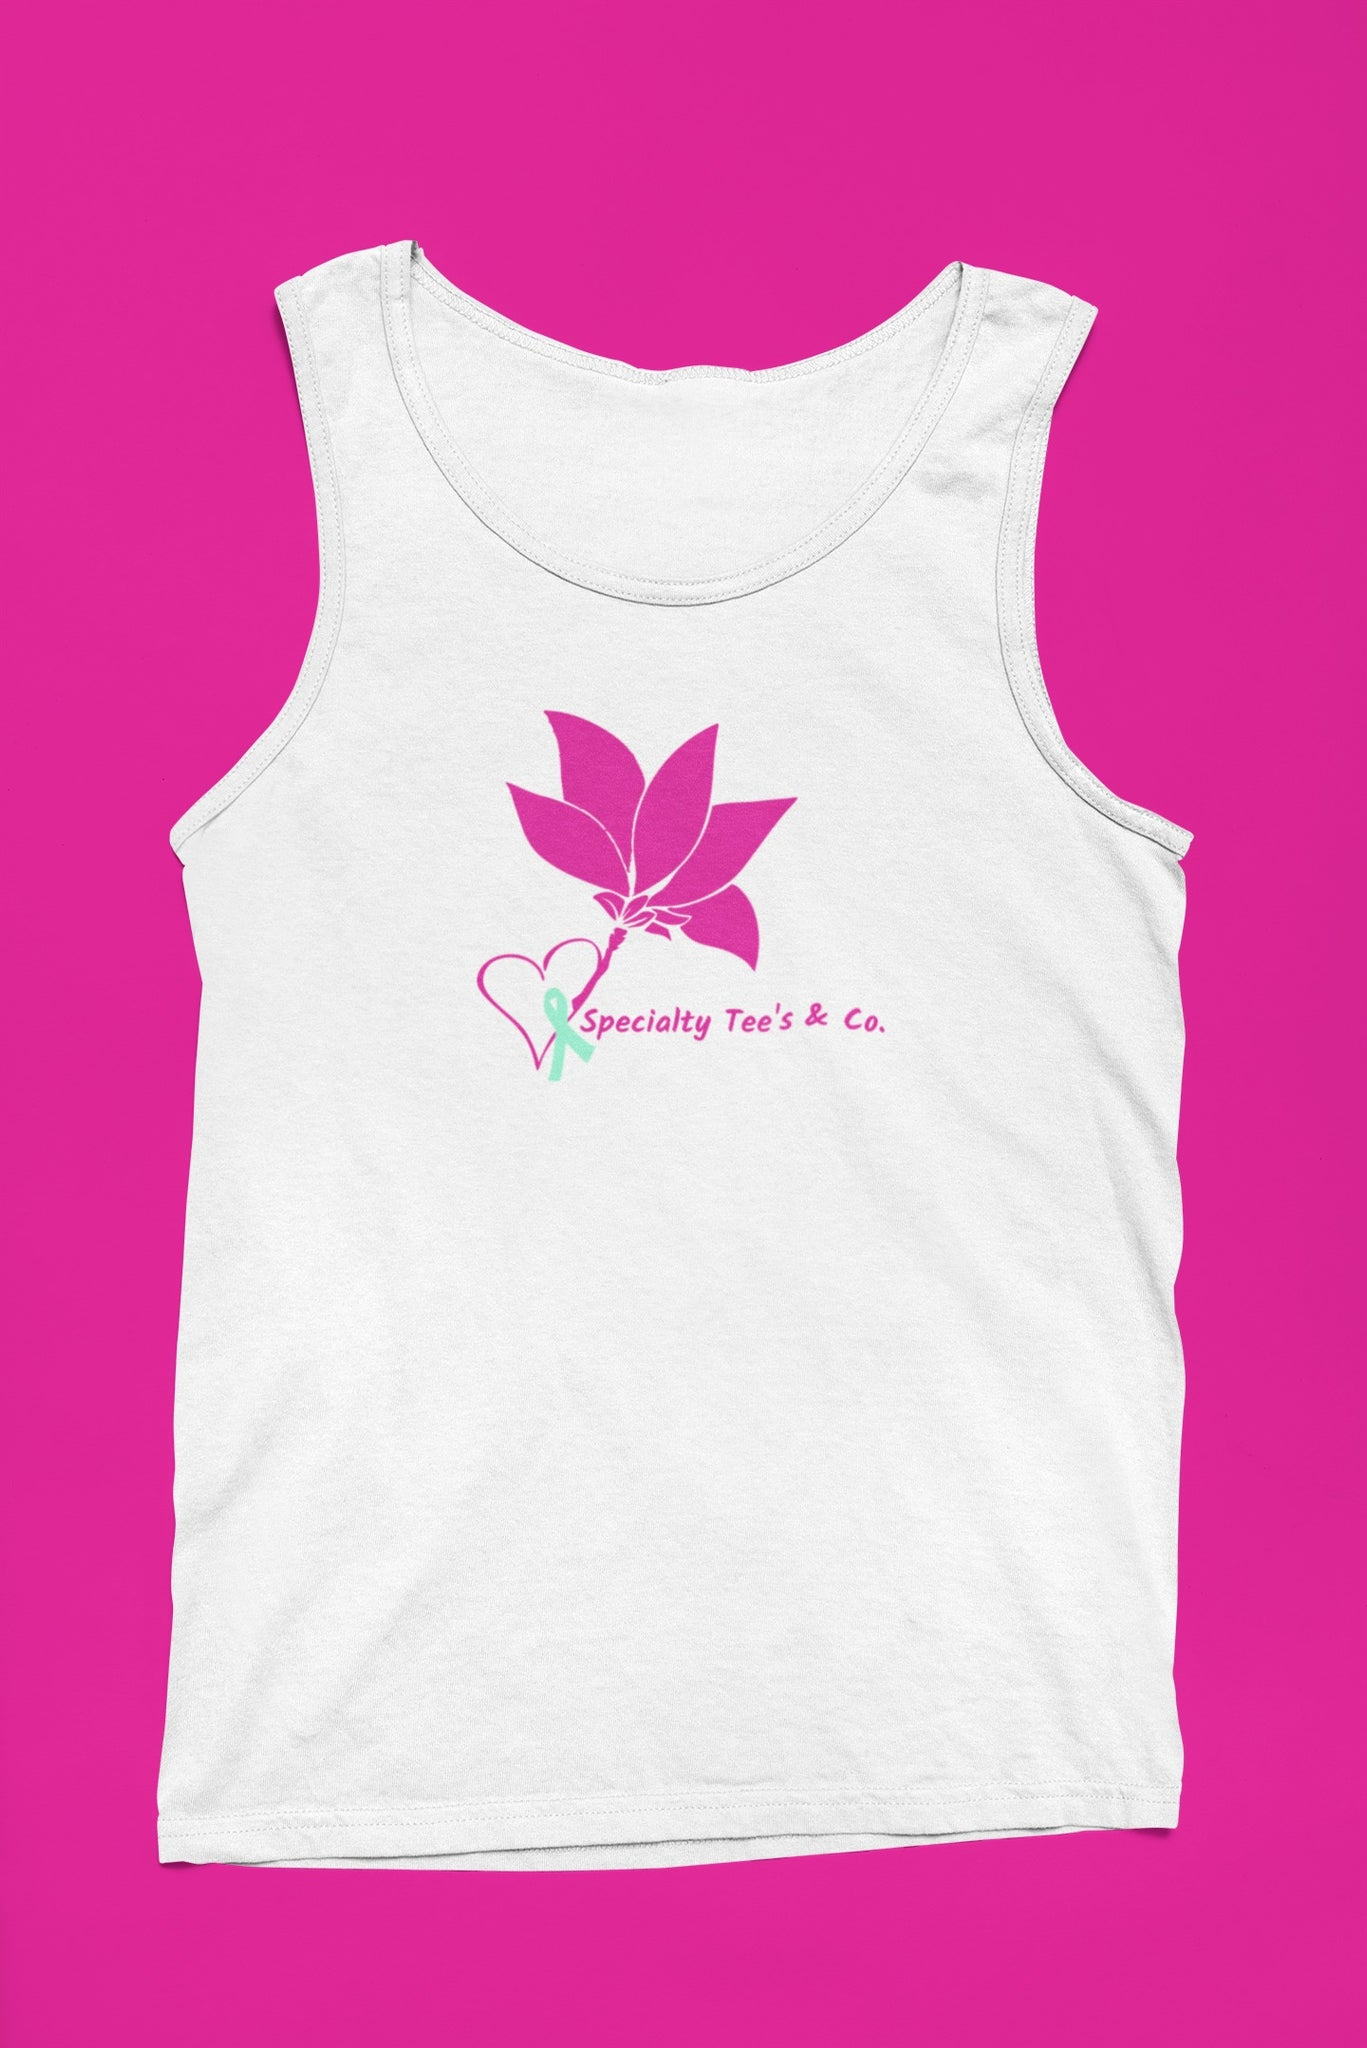 Specialty Tee's & Co Women's Tank